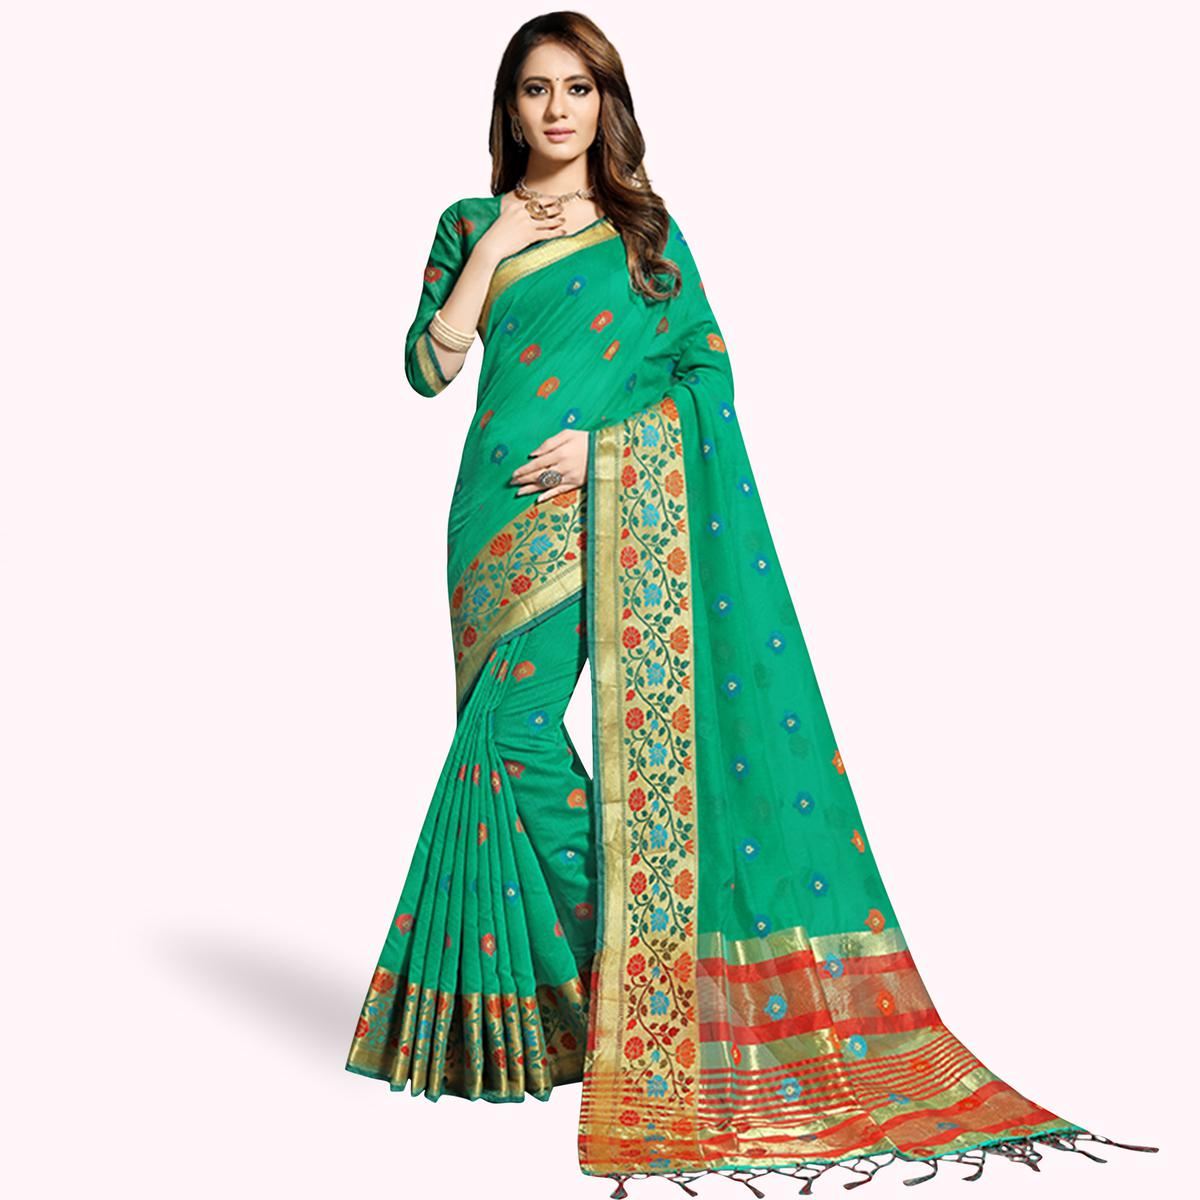 Elegant Green Colored Festive Wear Woven Chanderi Silk Saree